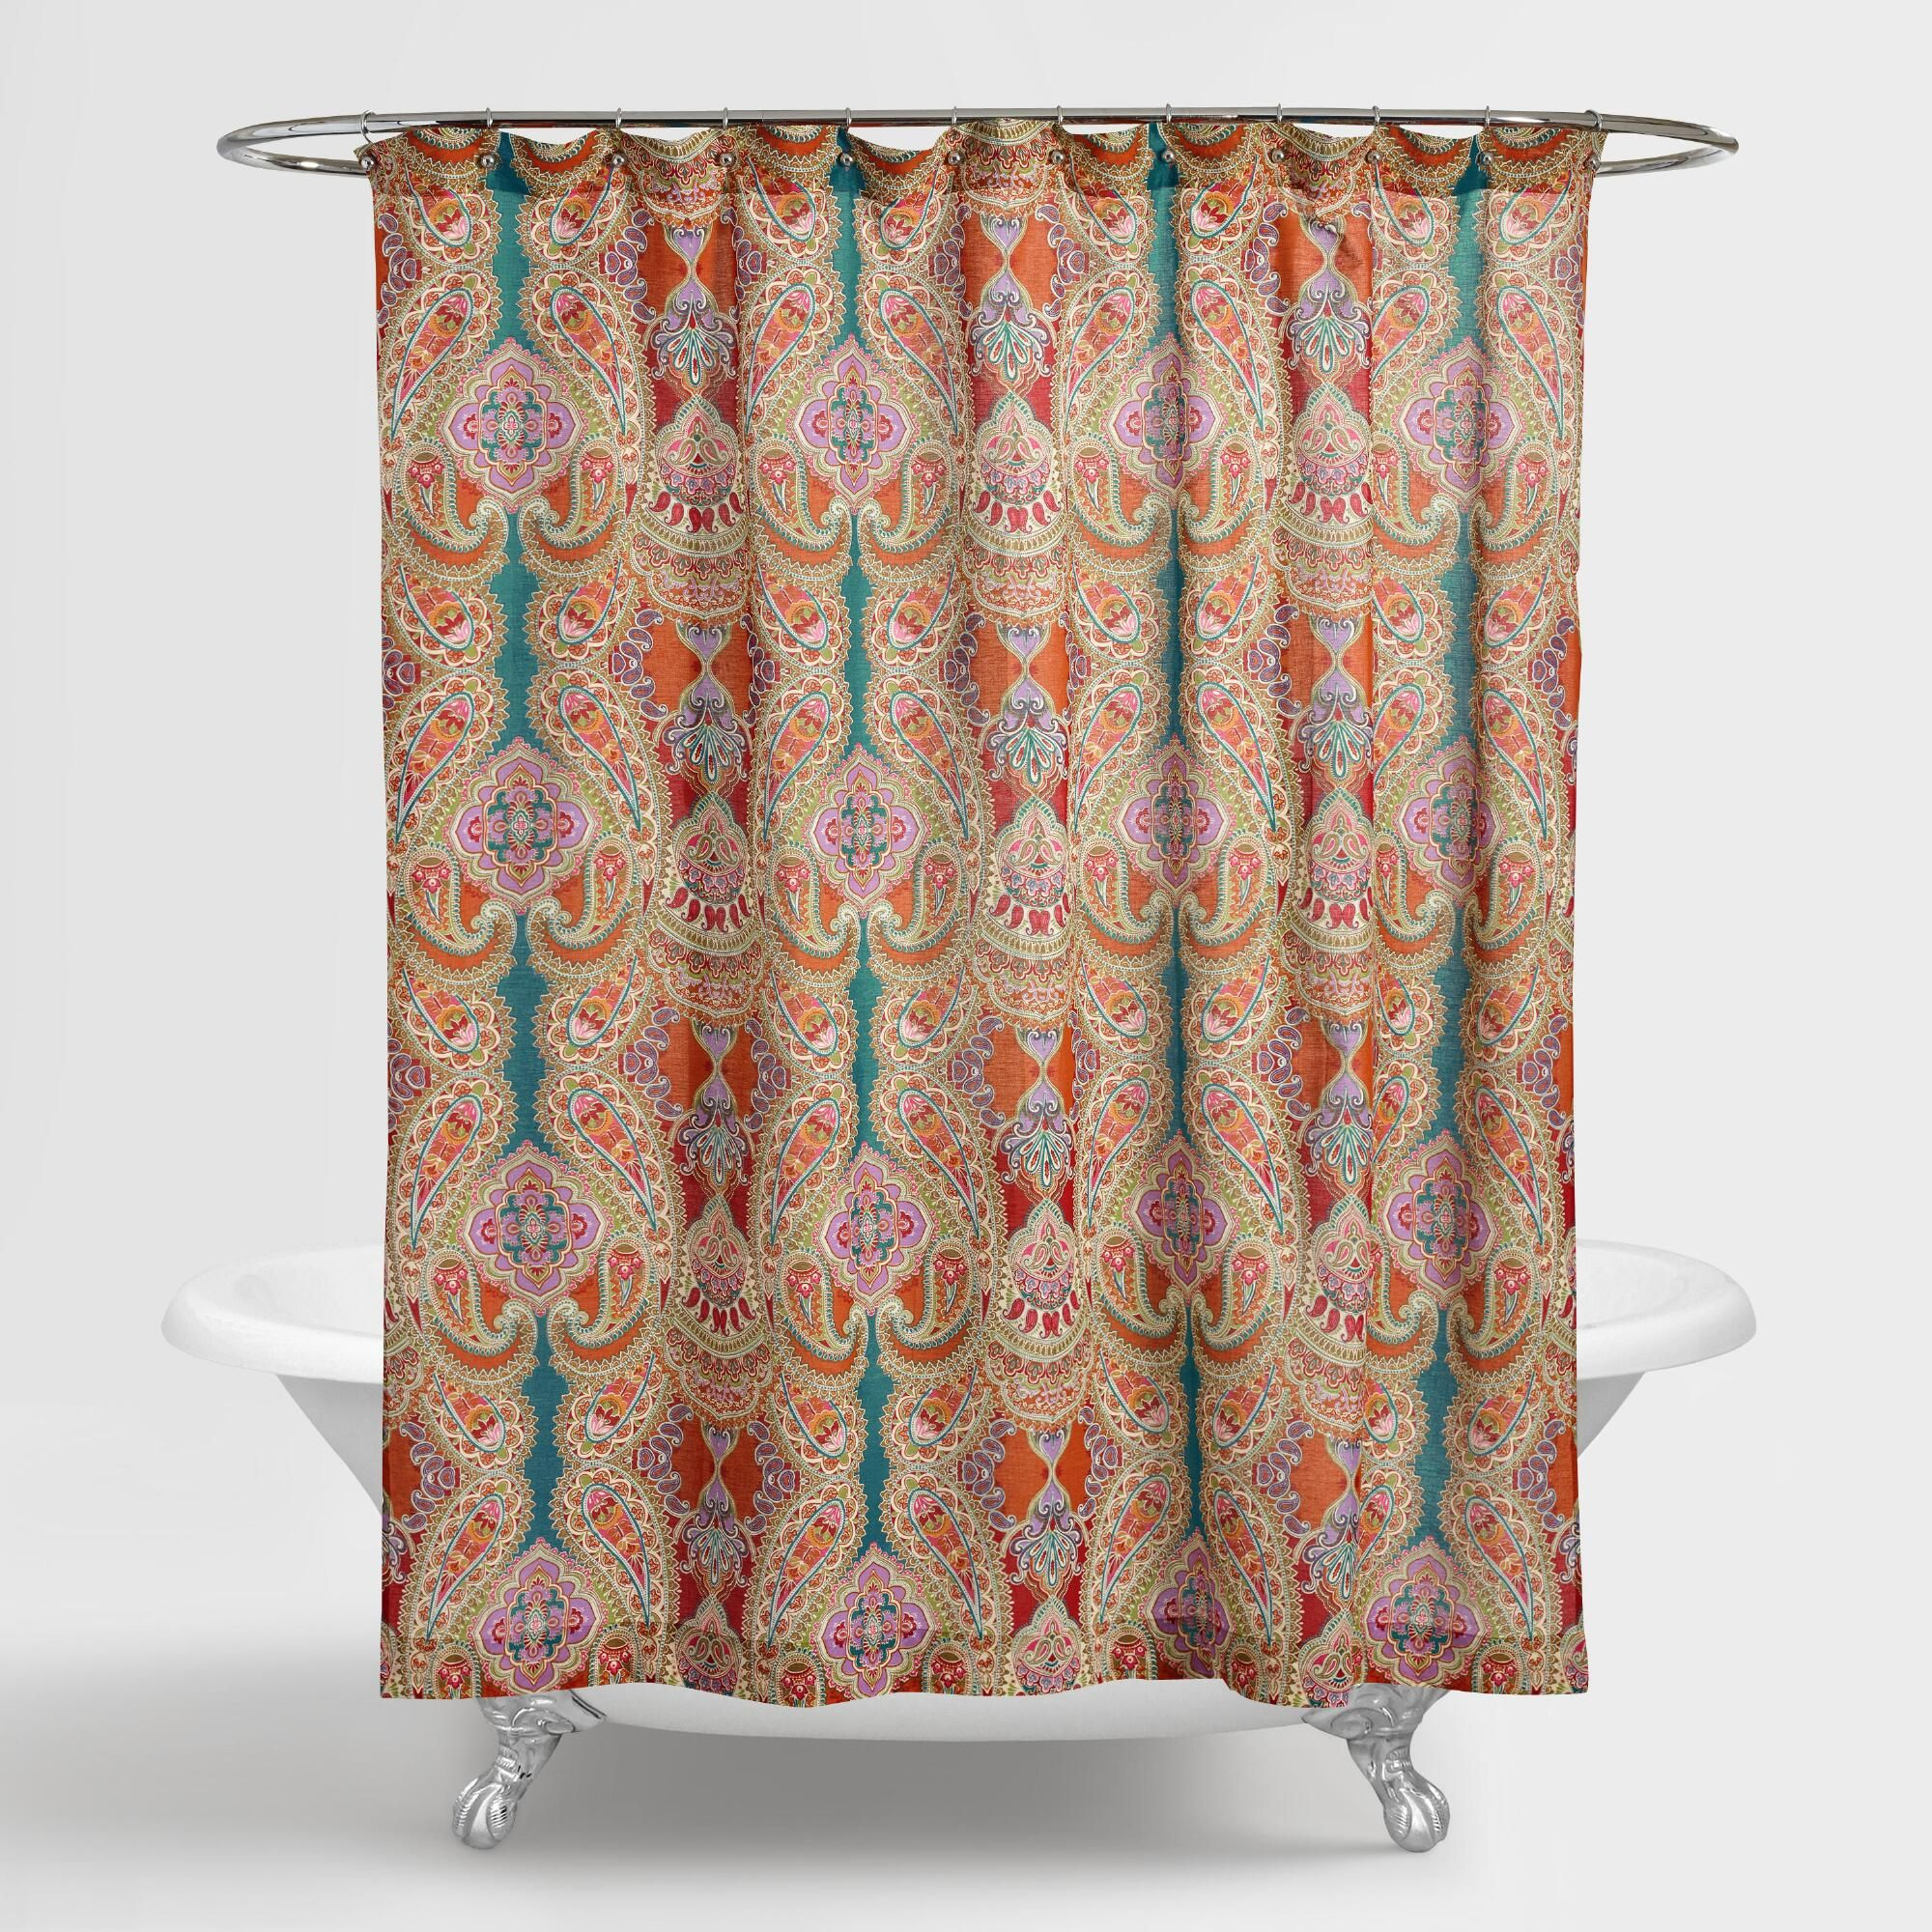 Air Curtain Shower Our Venice Paisley Shower Curtain Adds A Whimsical Air With Its